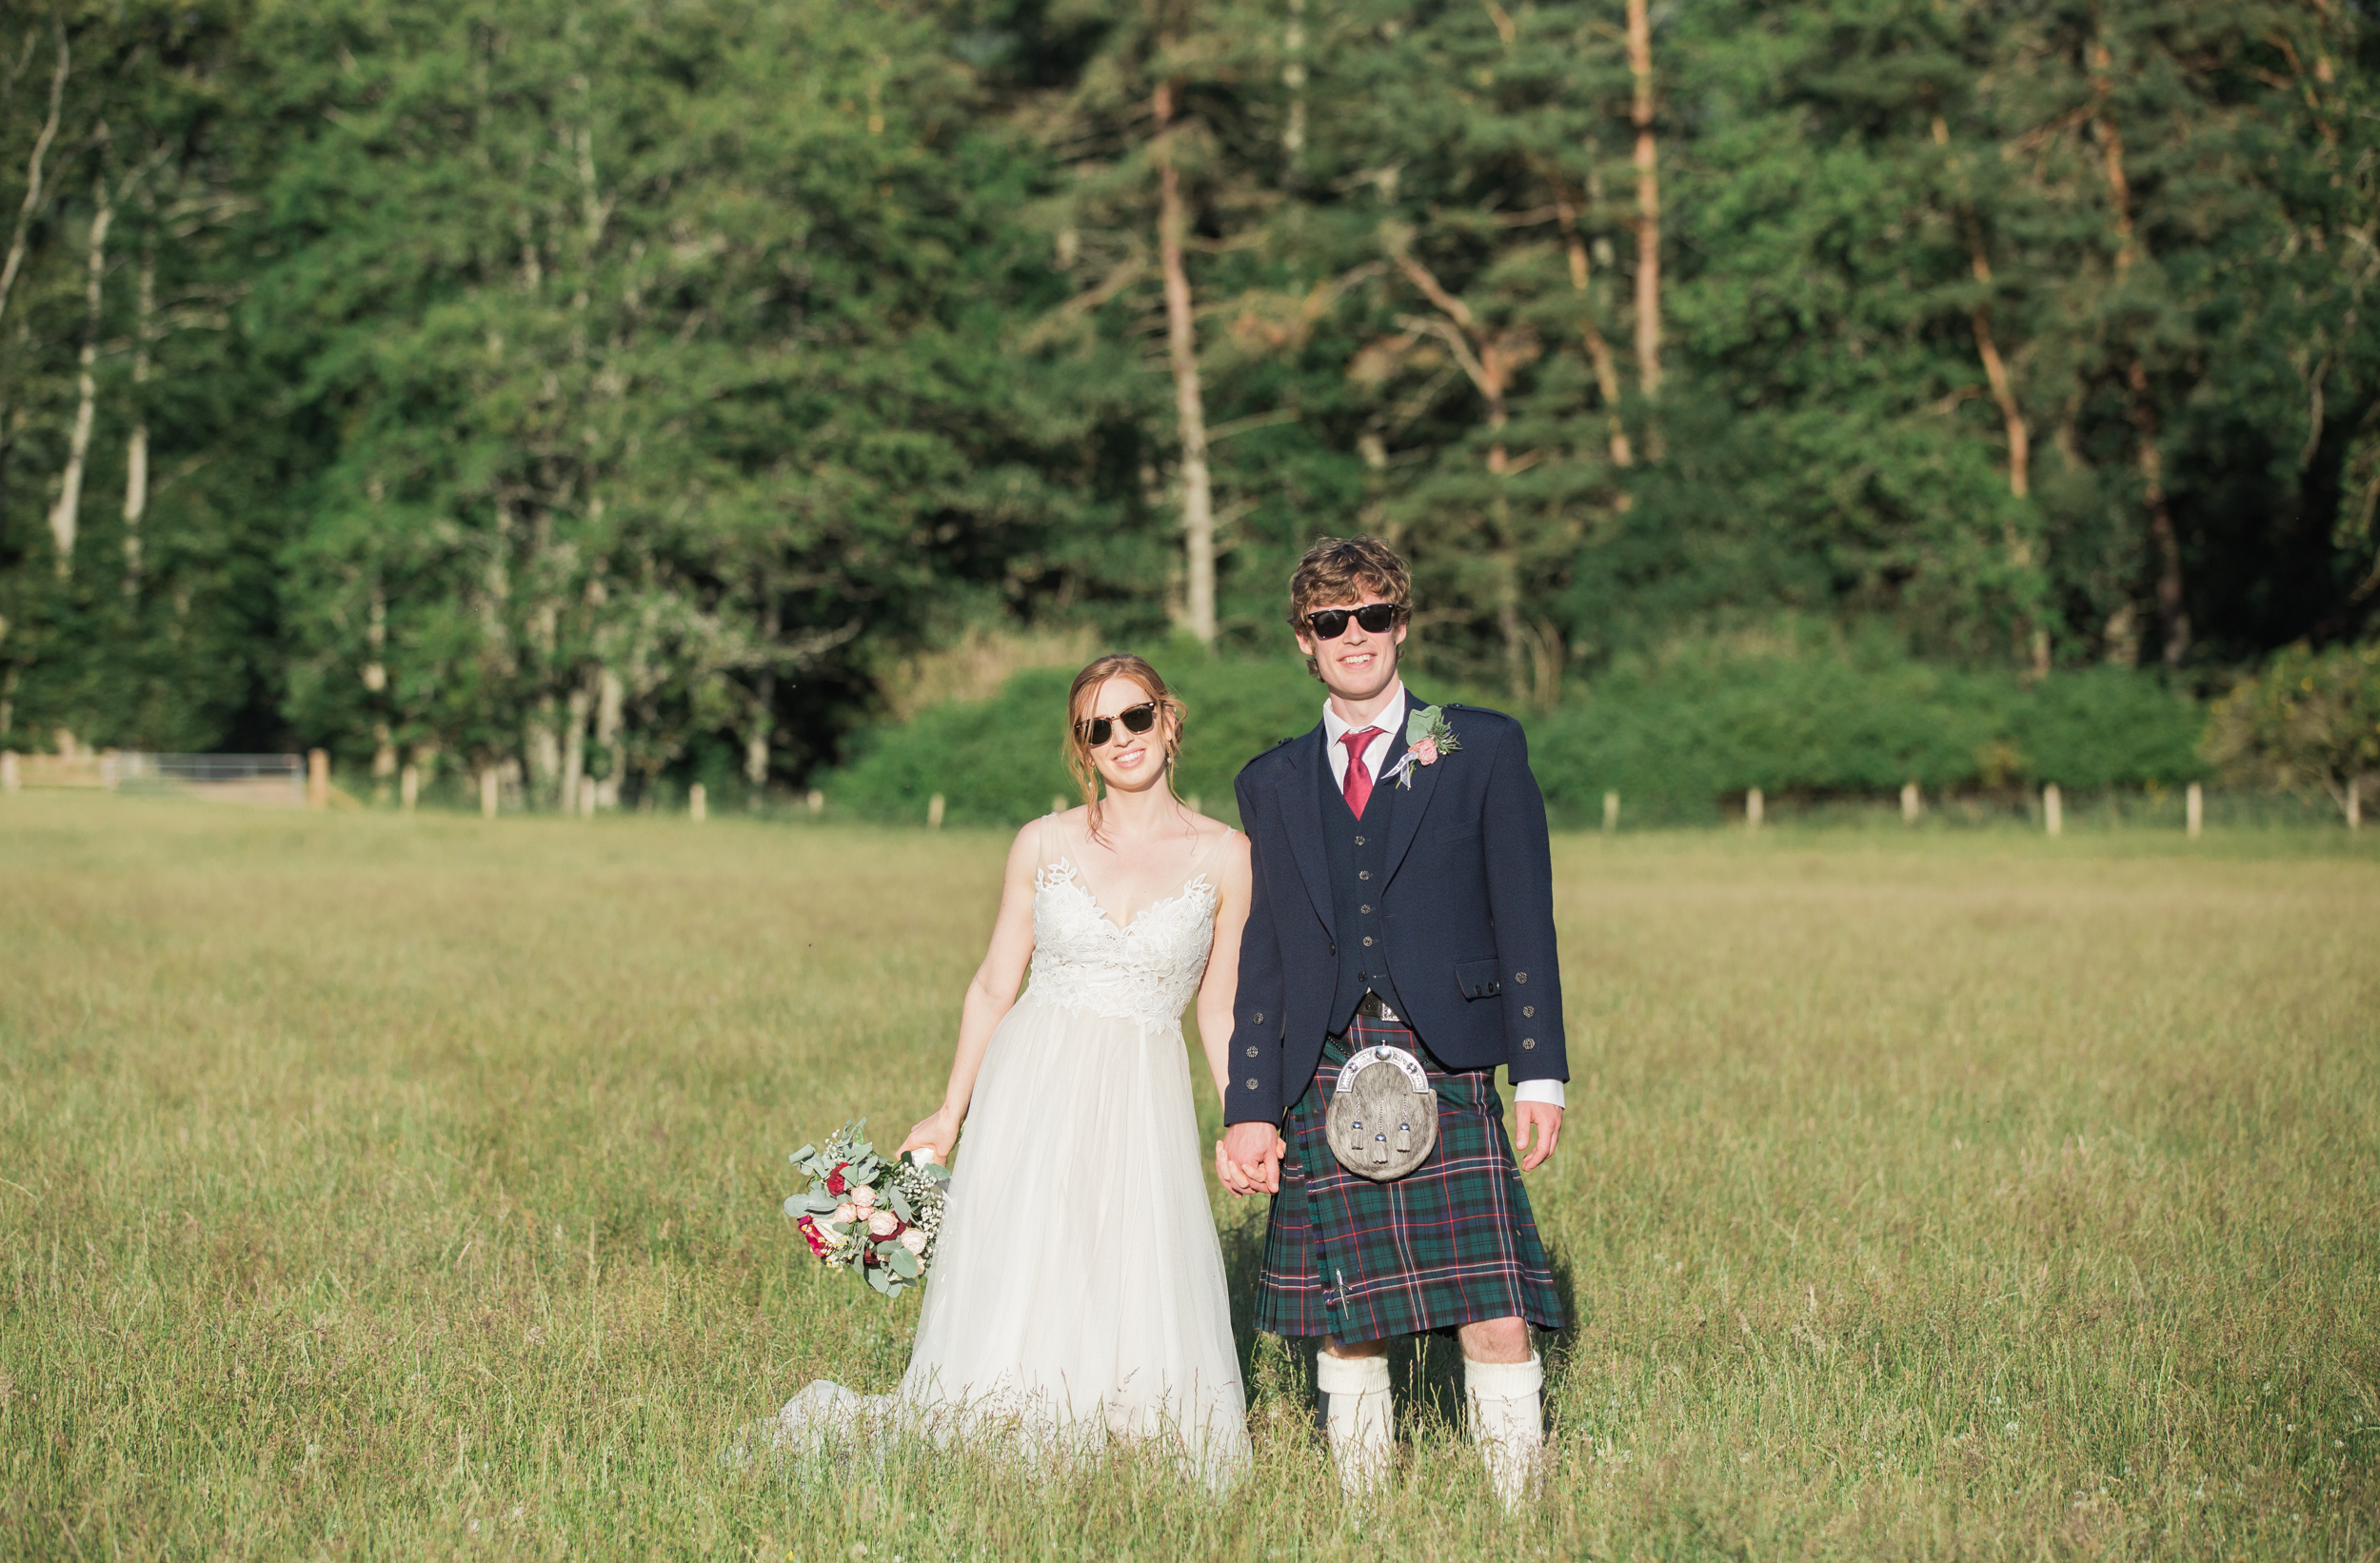 aswanley, aswanley wedding photographer, Aberdeen wedding photographer, wedding photographers in Aberdeen